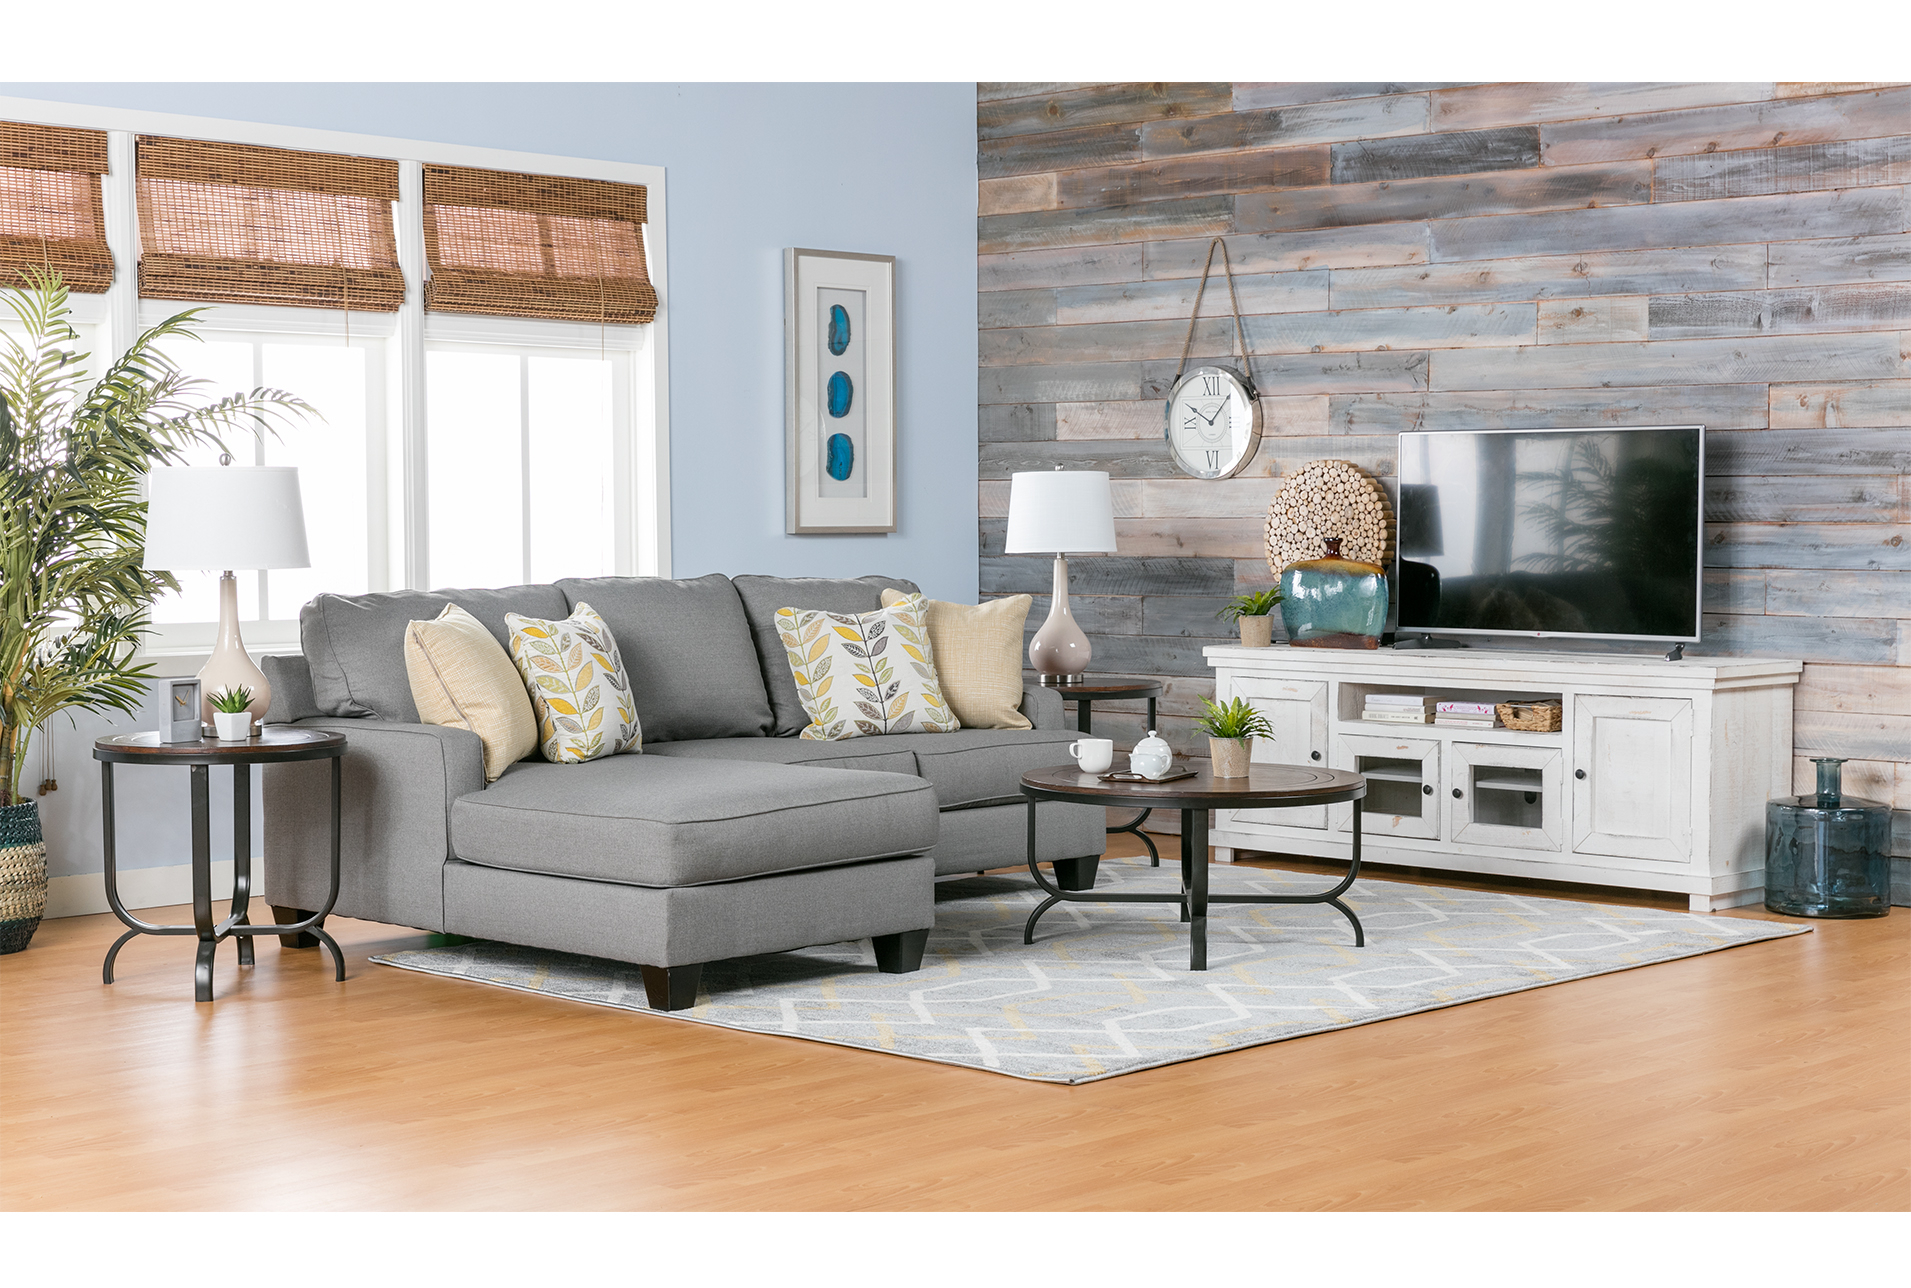 Sinclair White 64 Inch Tv Stand In 2018 | Products | Pinterest | Tvs Inside Sinclair Blue 64 Inch Tv Stands (View 16 of 30)